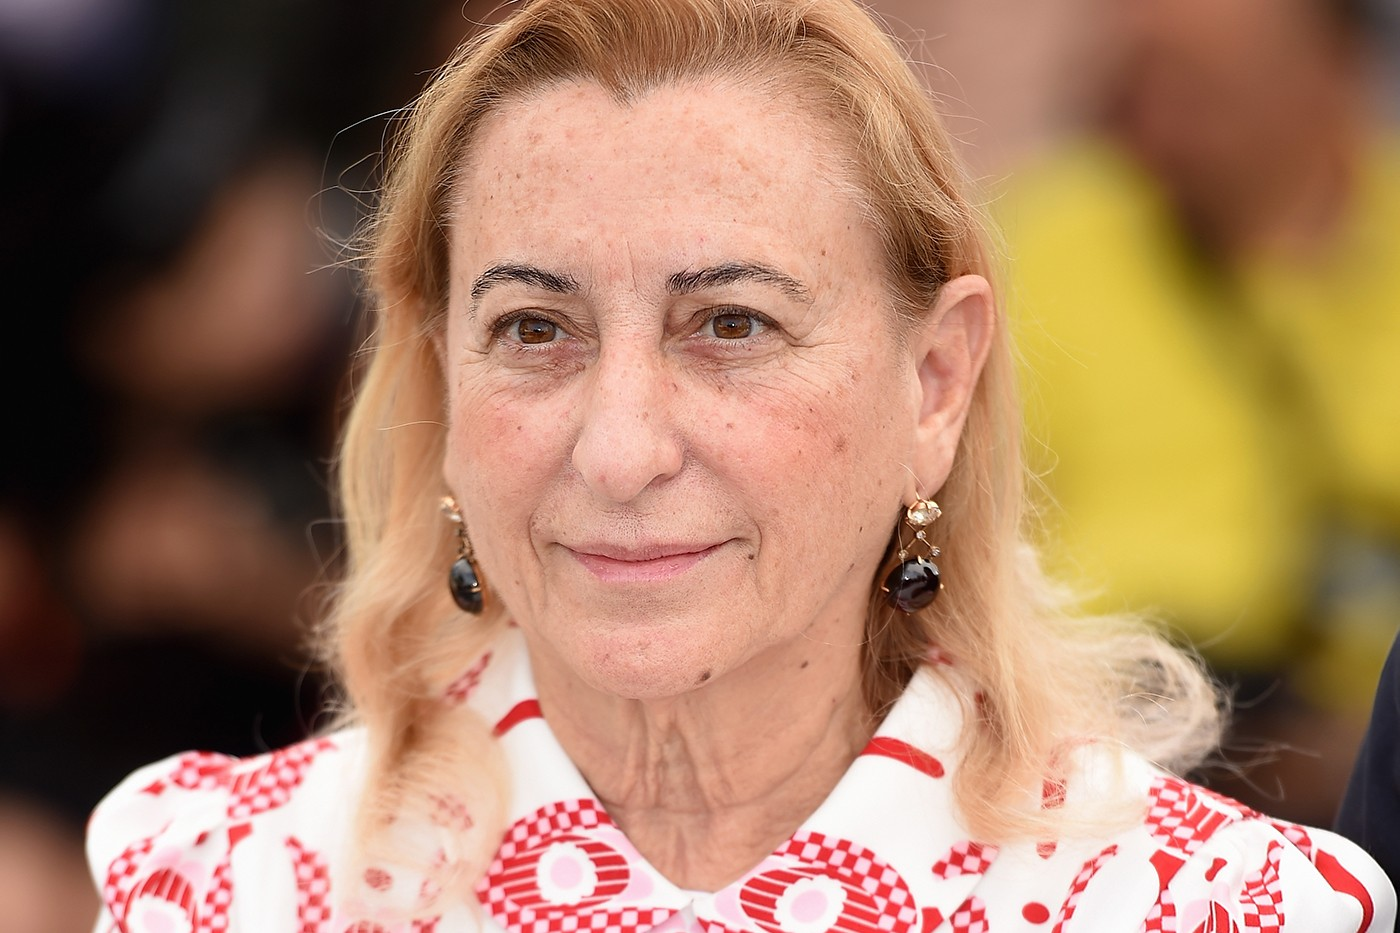 Miuccia Prada Yearly Earnings Paul Van Doren Vans Co founder dead at age 90 david after dentist viral video nft sale auction New Details About Pop Smoke Murder Case Revealed Research Results Listening to Hard Rock and Heavy Metal is Unhealthy